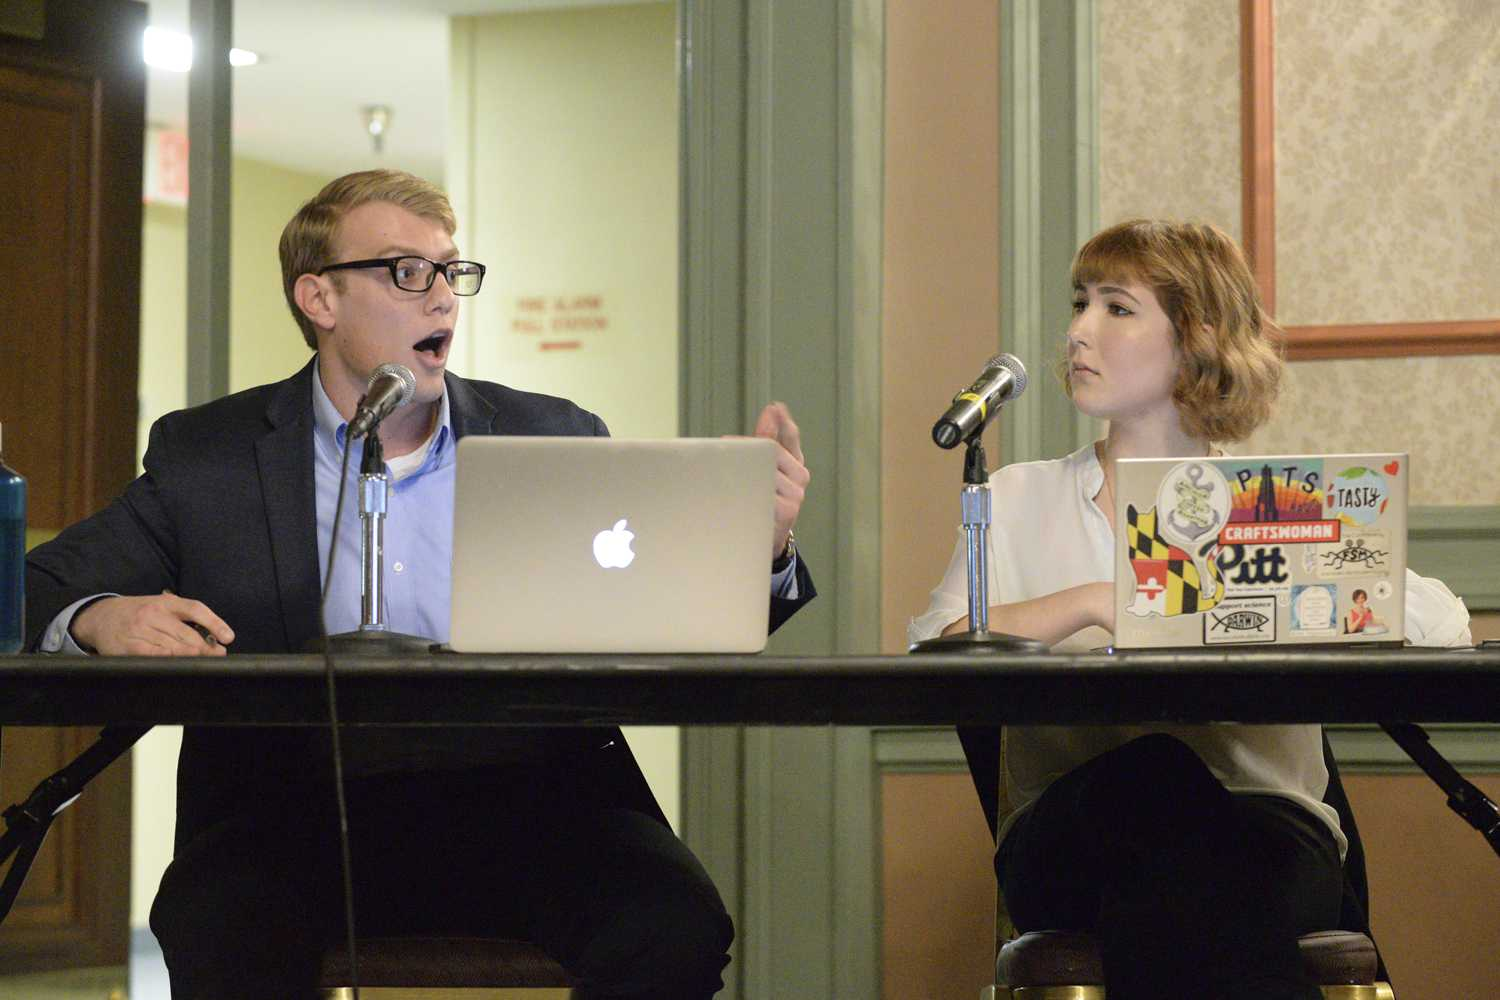 Kyle Guinness and Katherine Ranck, members of Pitt Libertarians, debate wealth redistribution Wednesday night in the William Pitt Union. (Photo by Issi Glatts | Assistant Visual Editor)